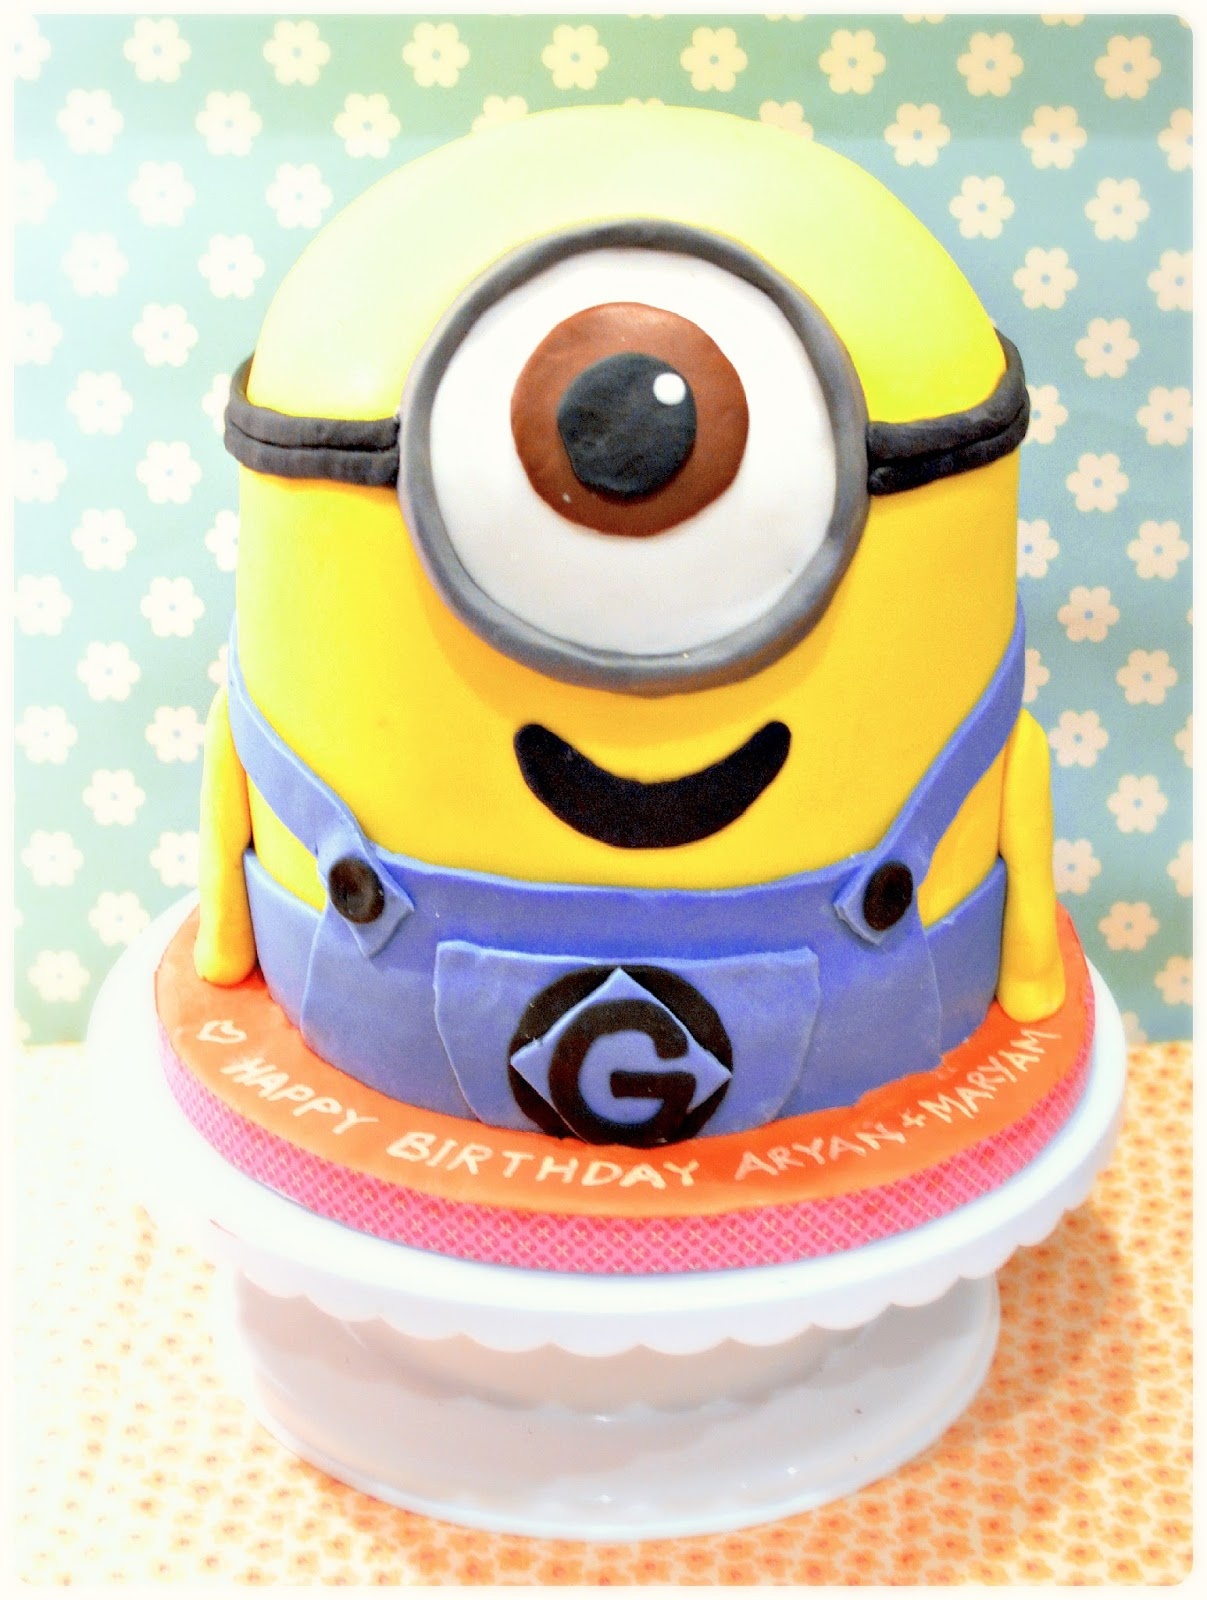 With Despicable me 2 coming out this July, I know many kids (and adults) will be hoping for a cute despicable me minion cake for their birthdays. My aunts and I had made a minion cake last year (for my uncle.. he very loudly made it clear that he wouldn't settle for anything less).